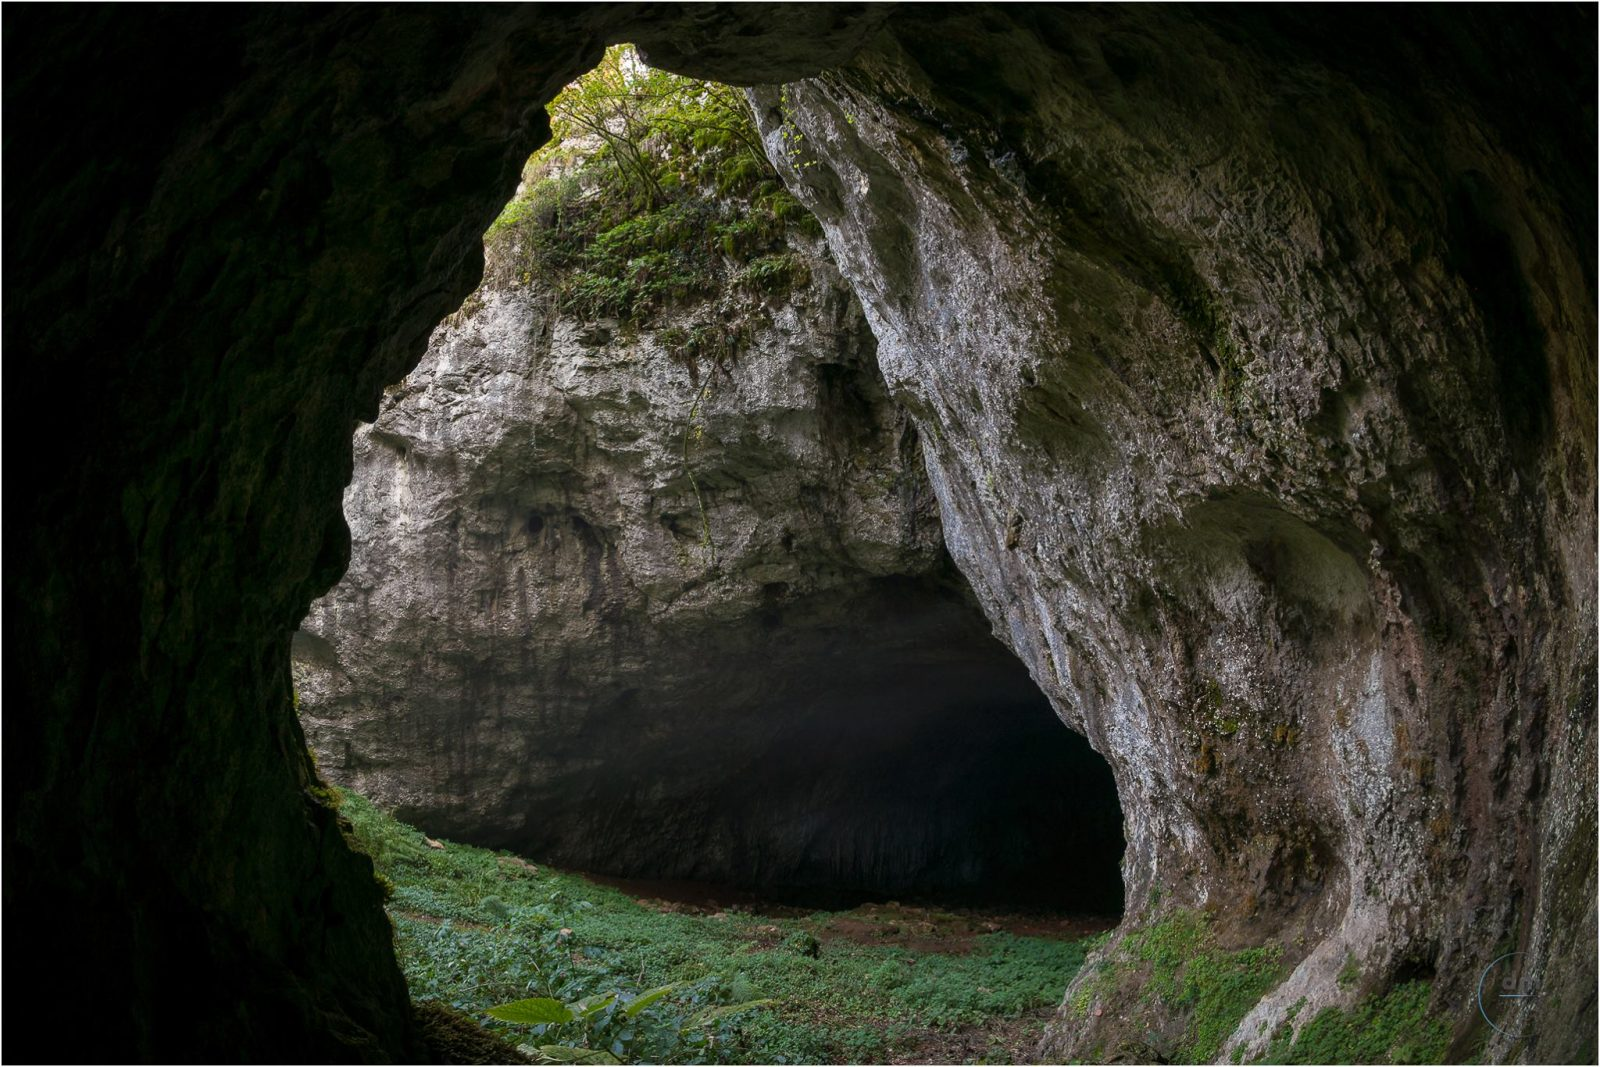 MISTERIOUS CAVE WITH DRAGON WHIFF NEAR PIĆAN